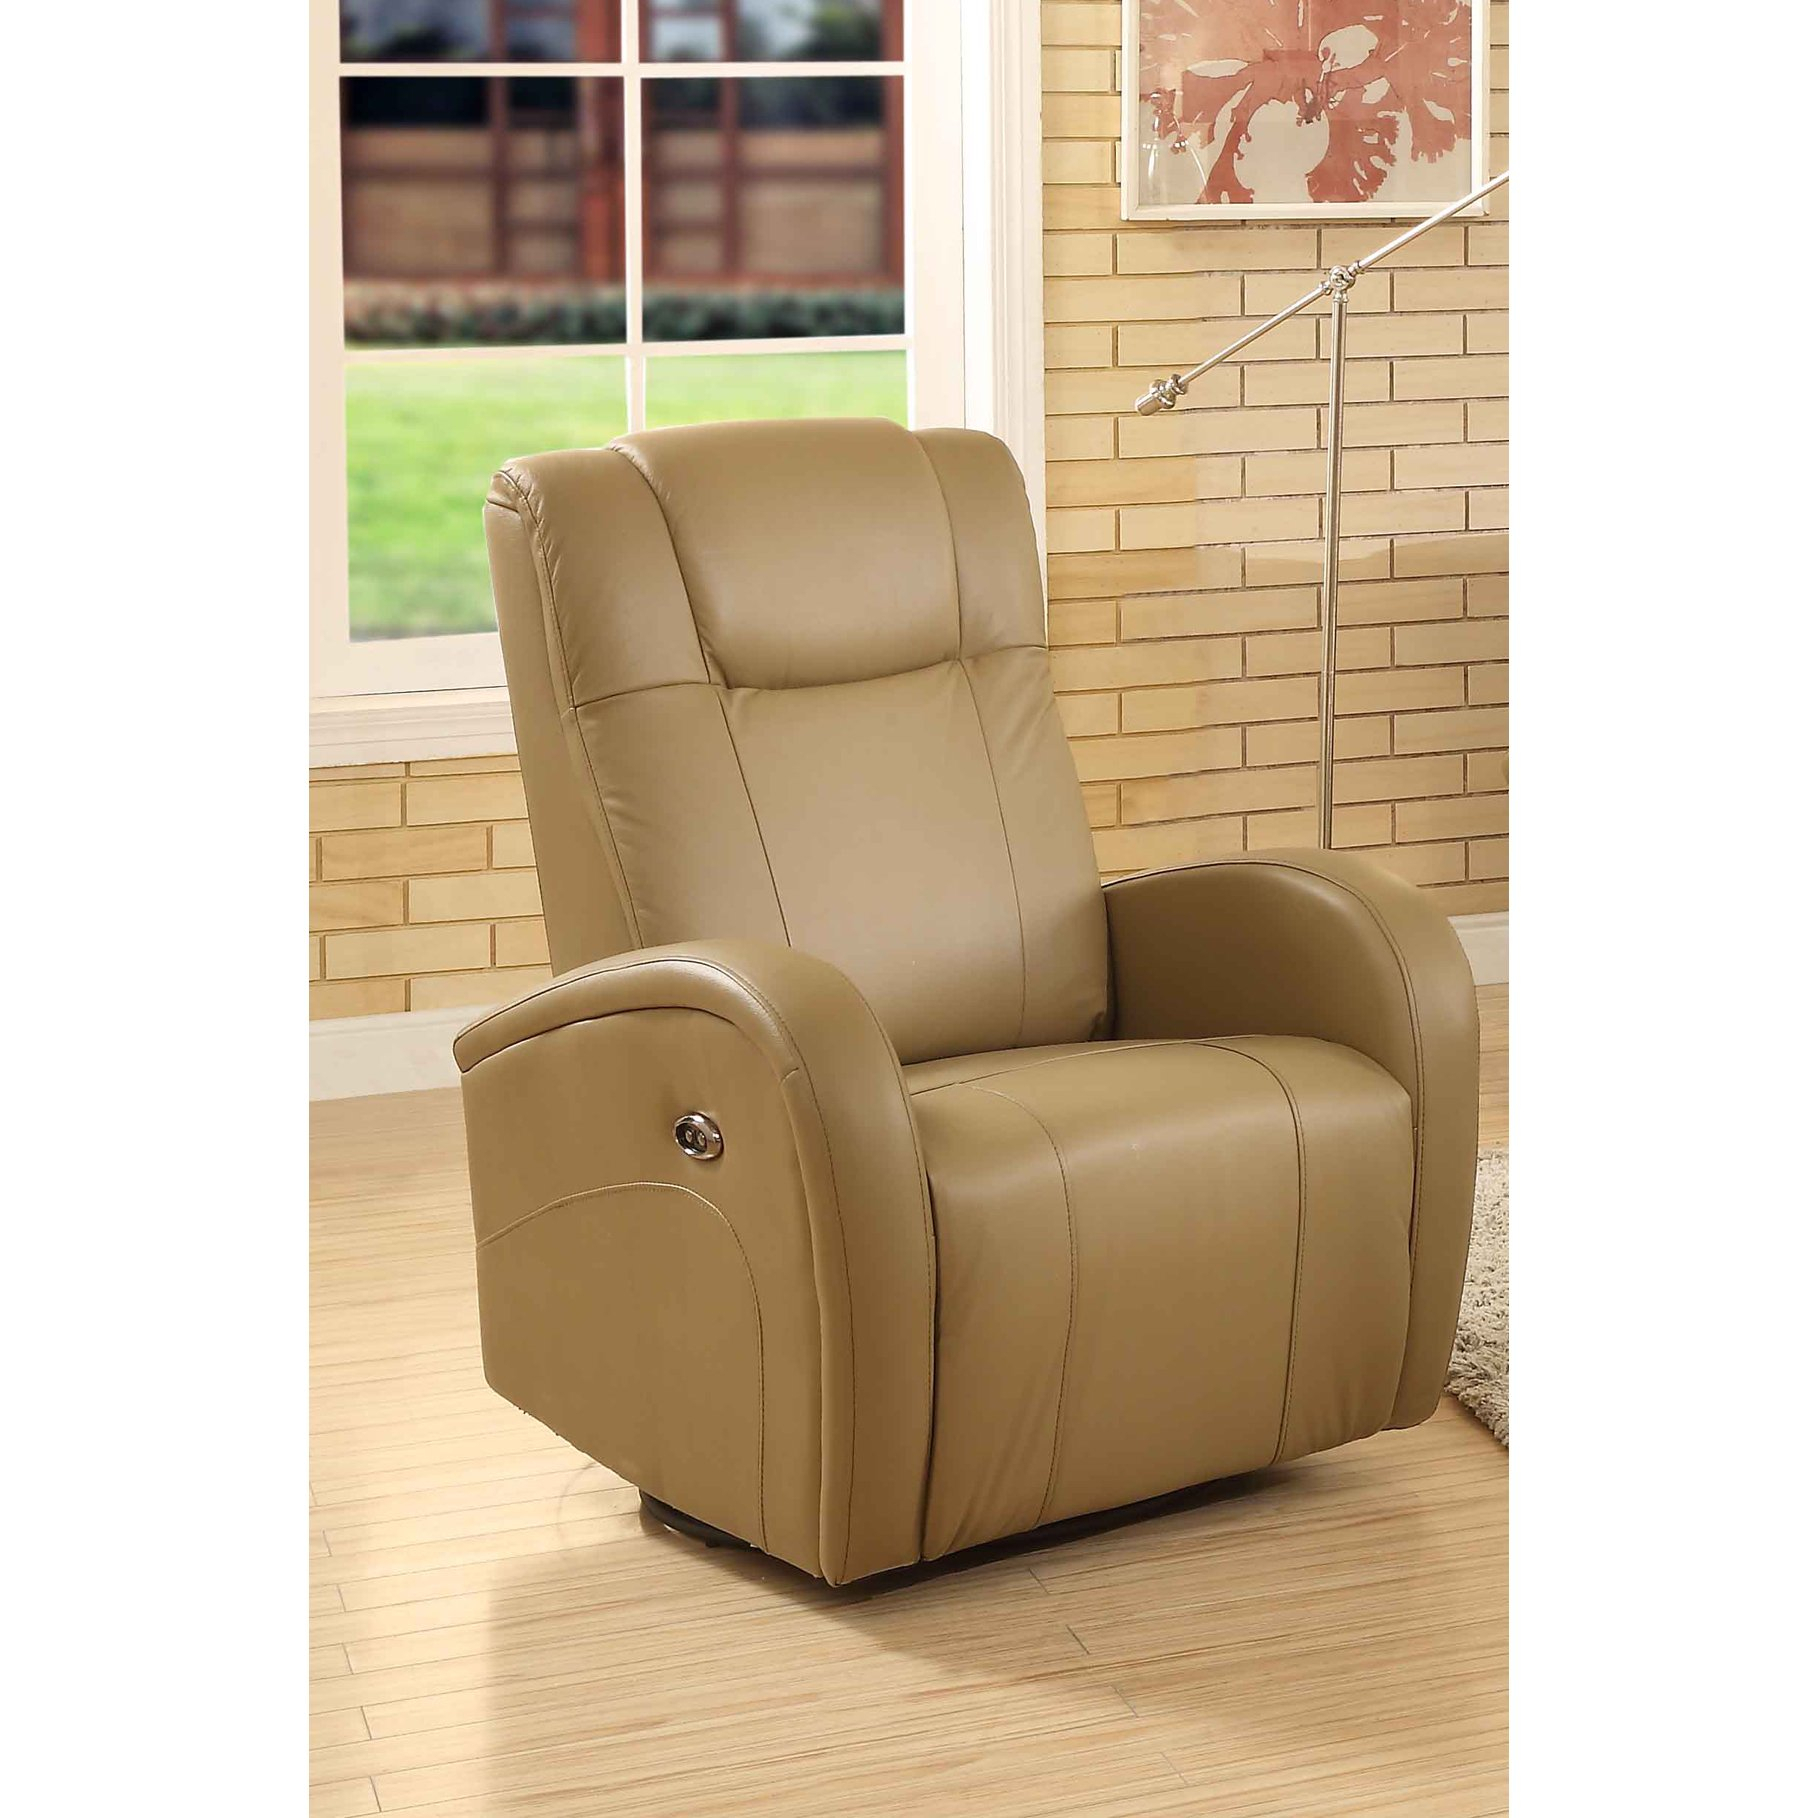 Easy Living Swiss Leather Swivel Power Glider Recliner With Usb In Gannon Linen Power Swivel Recliners (Image 3 of 20)